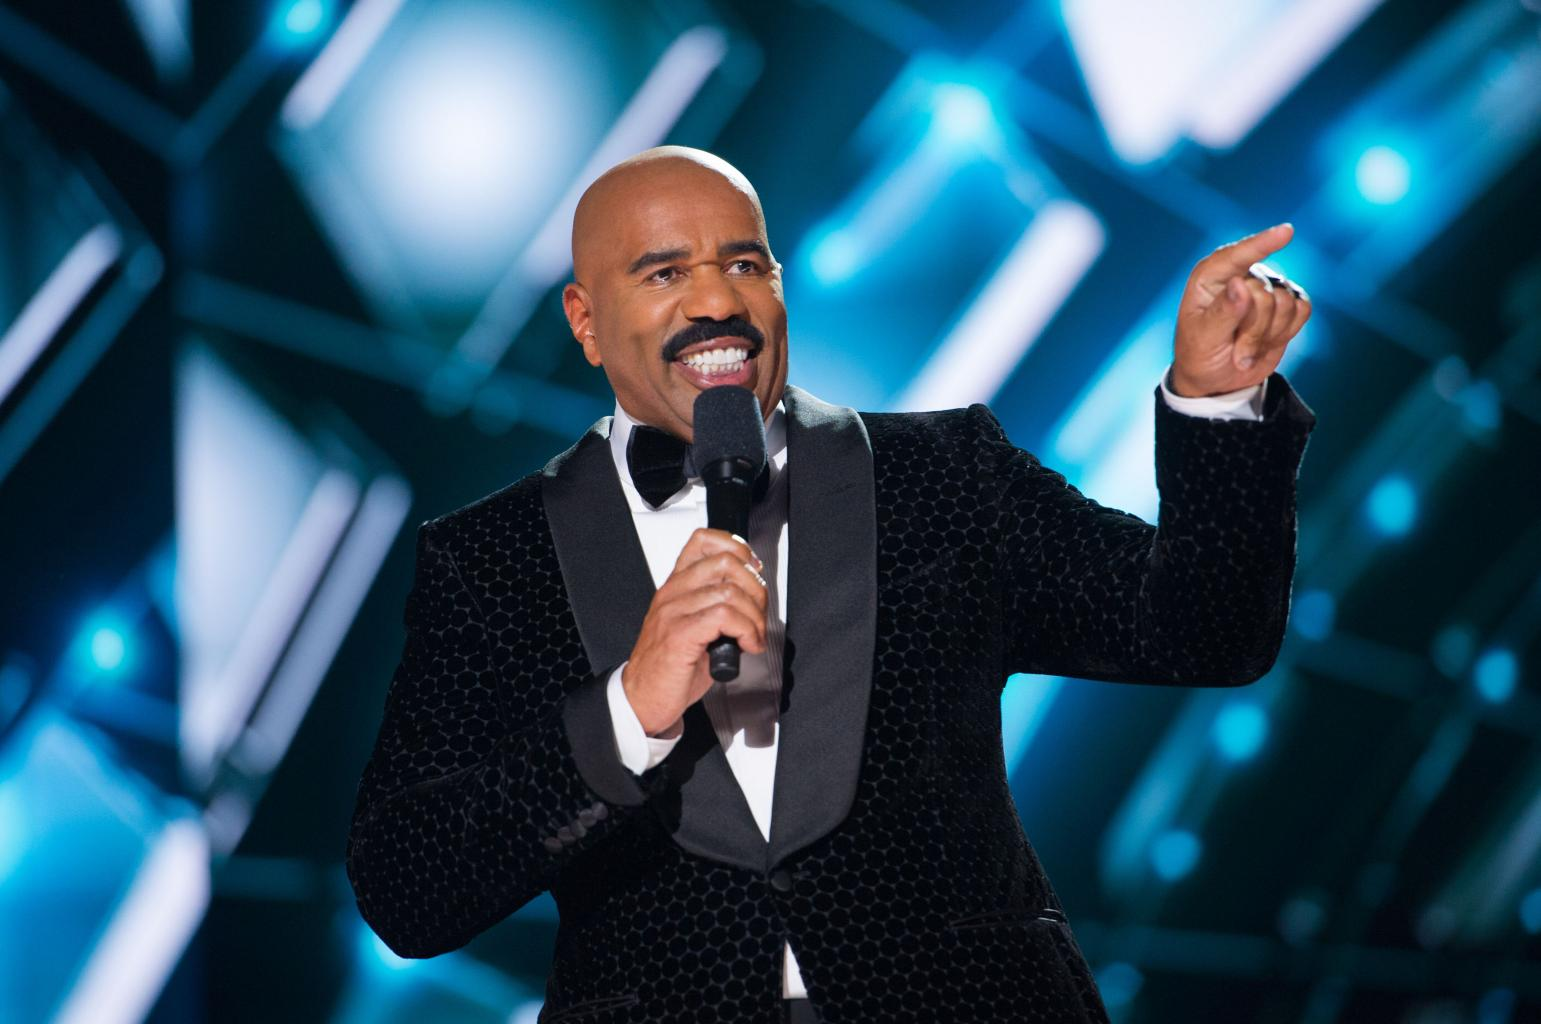 Steve Harvey Under Fire After Making Racist        Jokes      '  About Asian Men